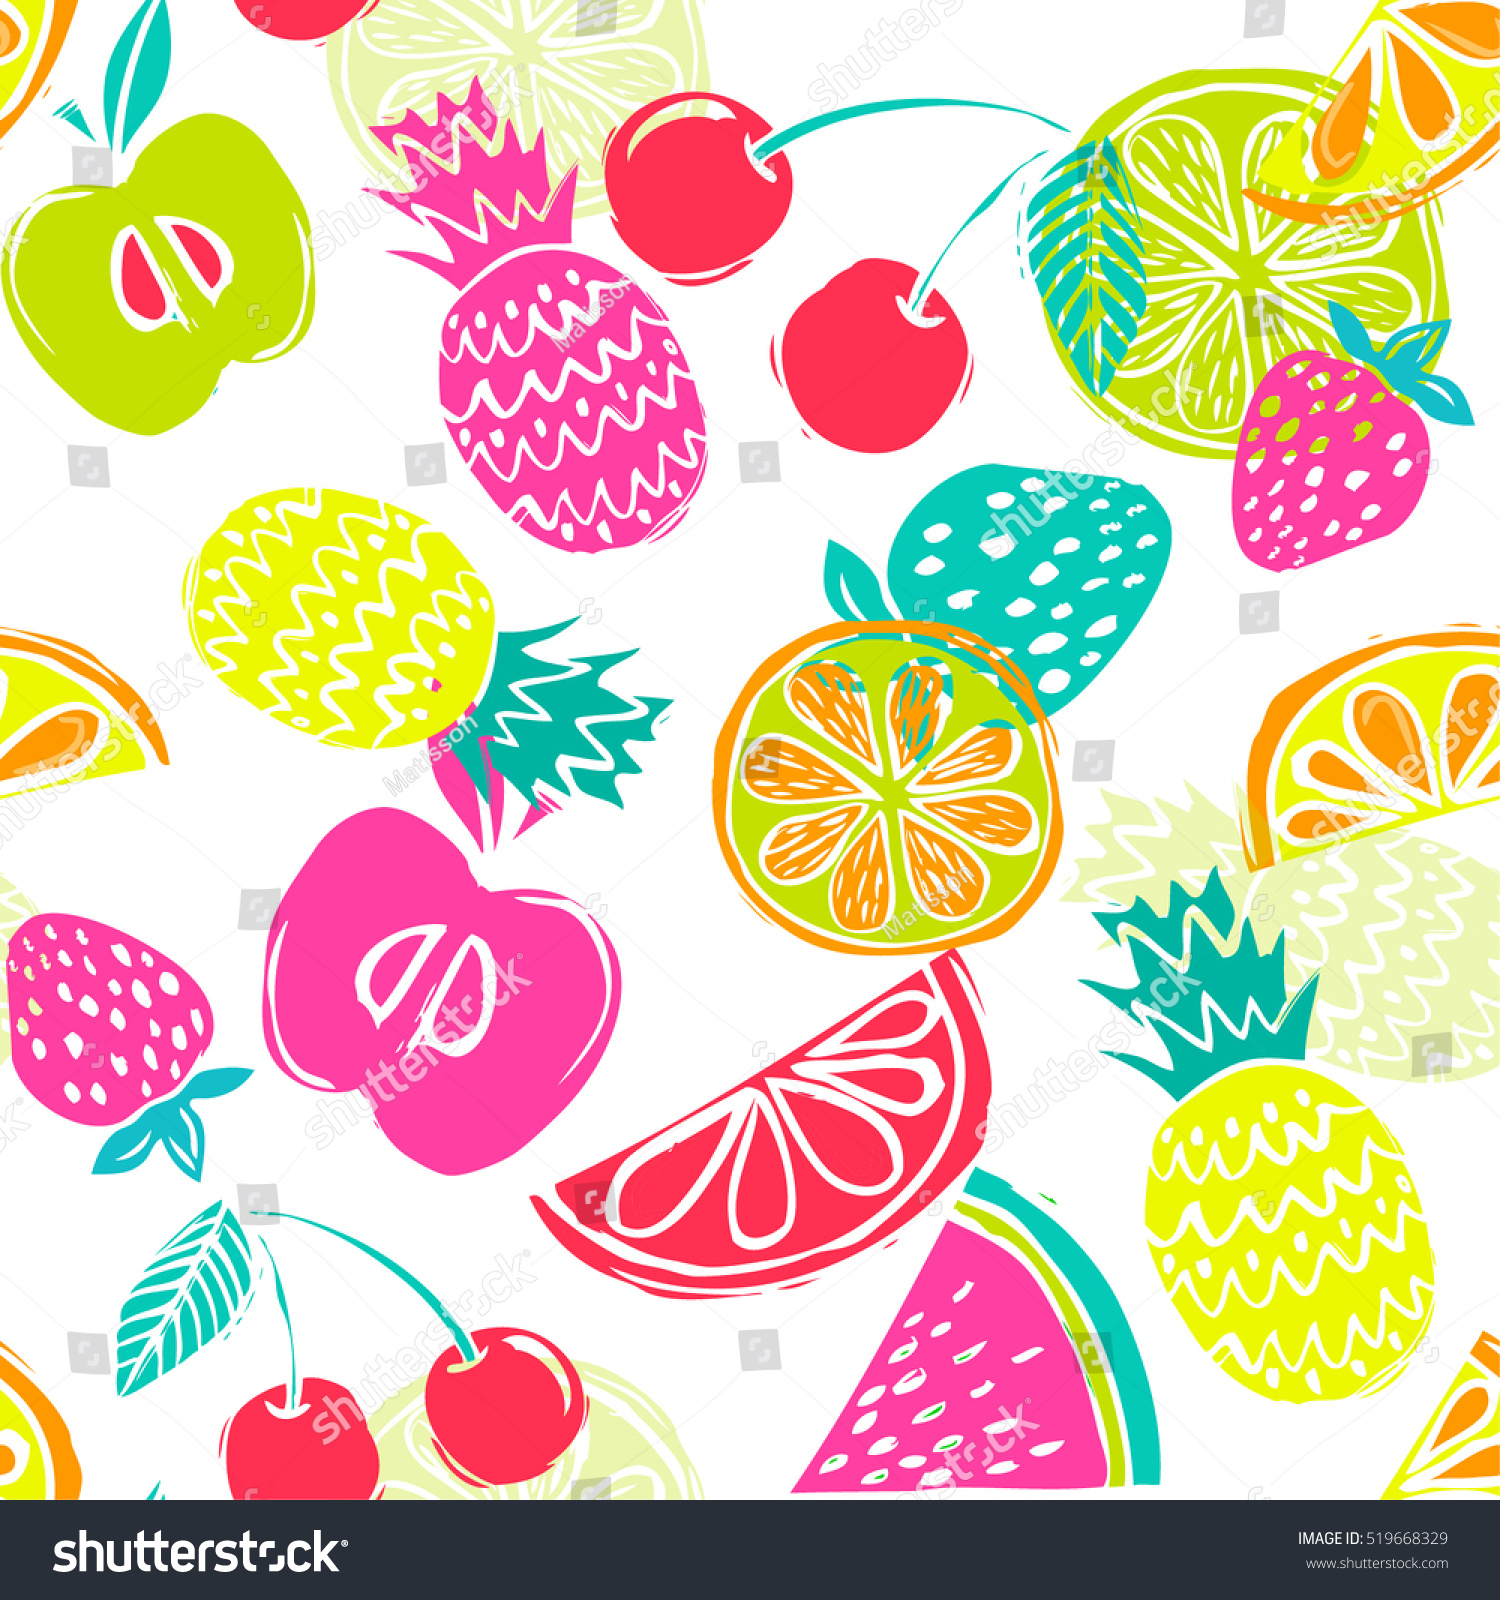 Fashion Girlish Funny Wallpapers Seamless Pattern Stock